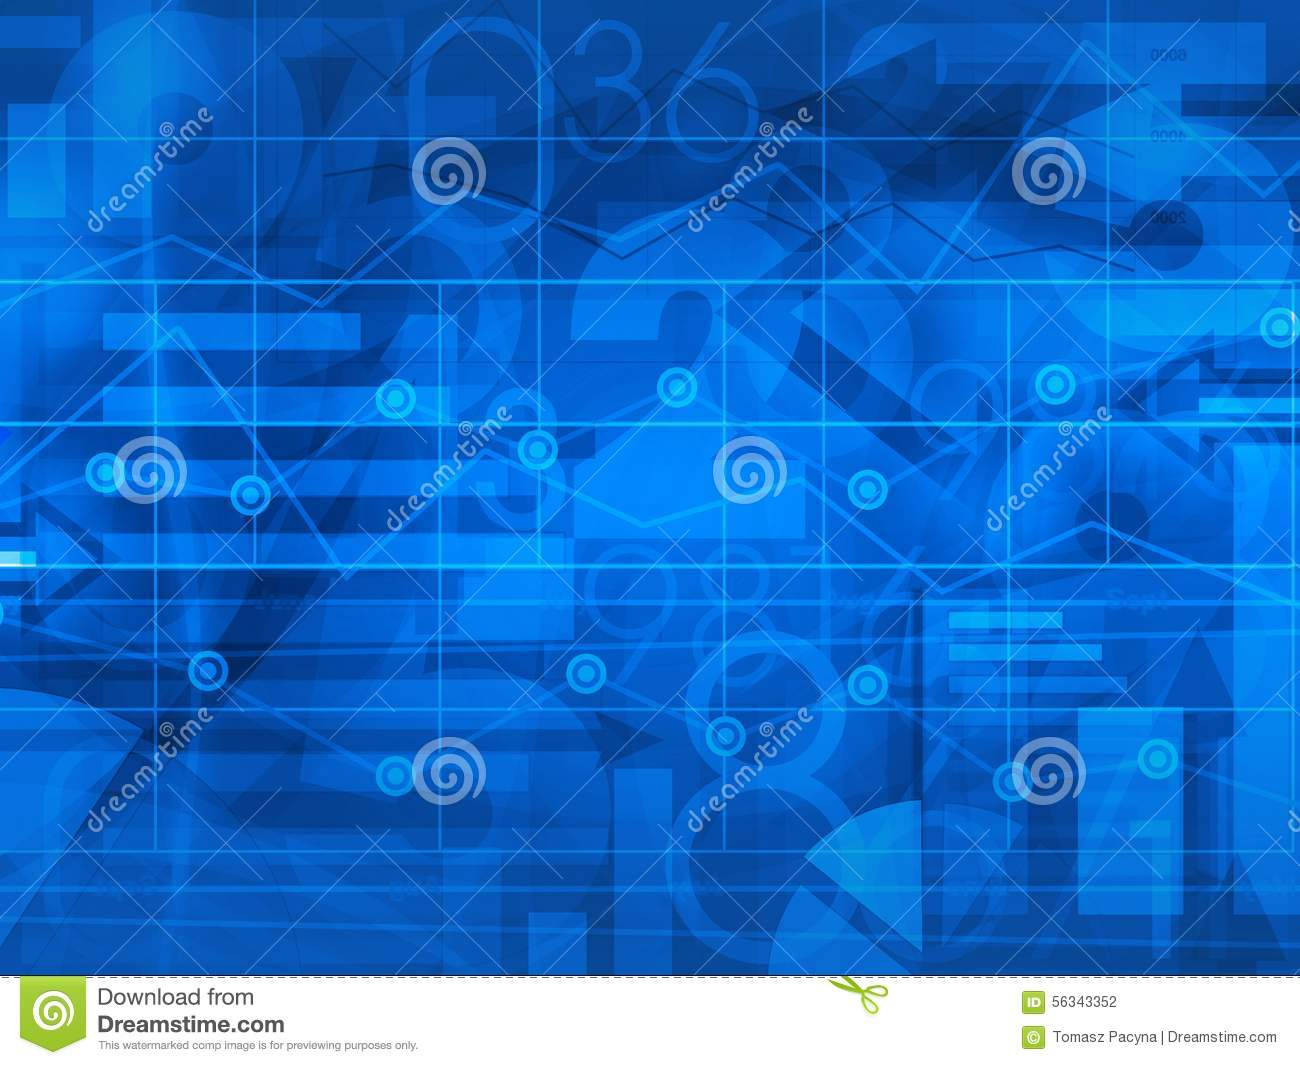 Financial business blue background